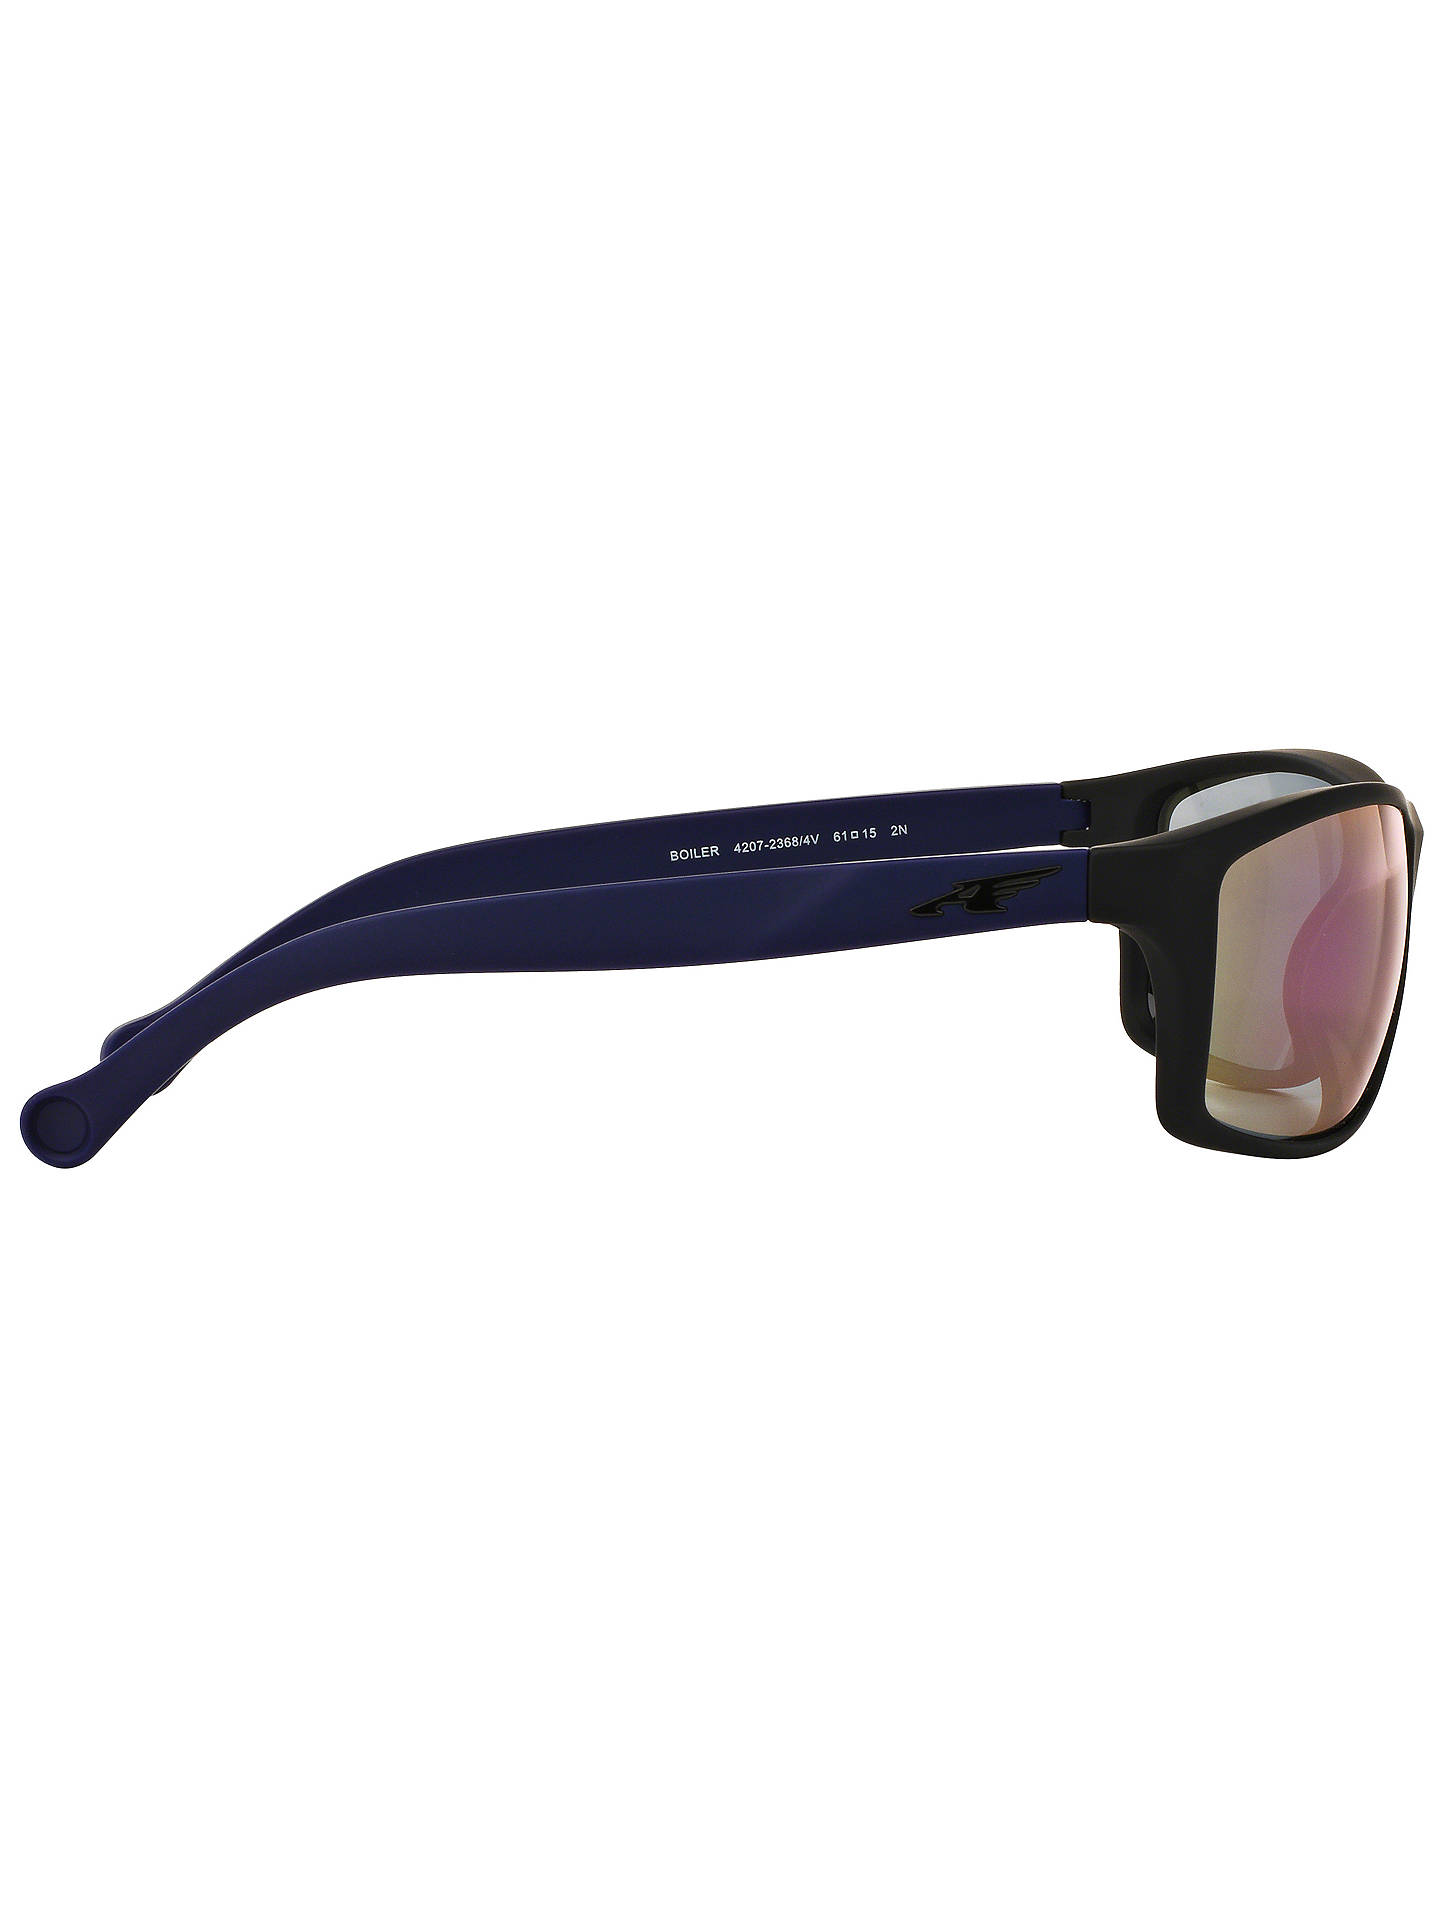 04e1874af92d ... Buy Arnette AN4207 Boiler Rectangular Sunglasses, Black Online at  johnlewis.com